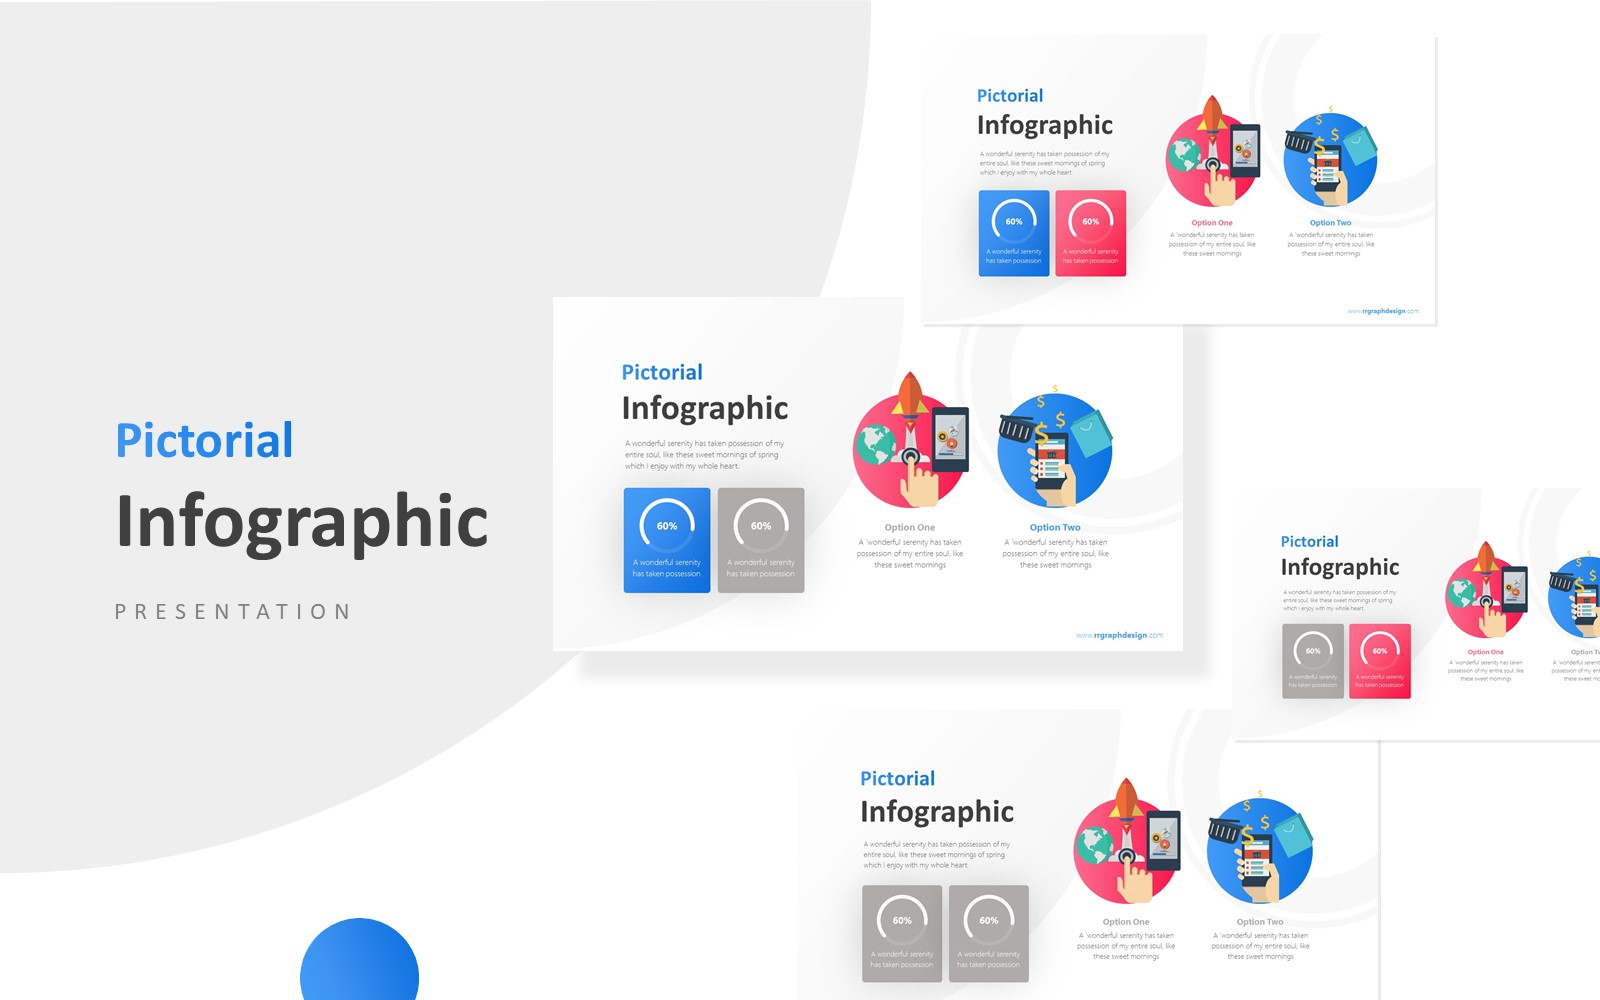 Plan and Goal Infographic Infographic Presentation PowerPoint Template